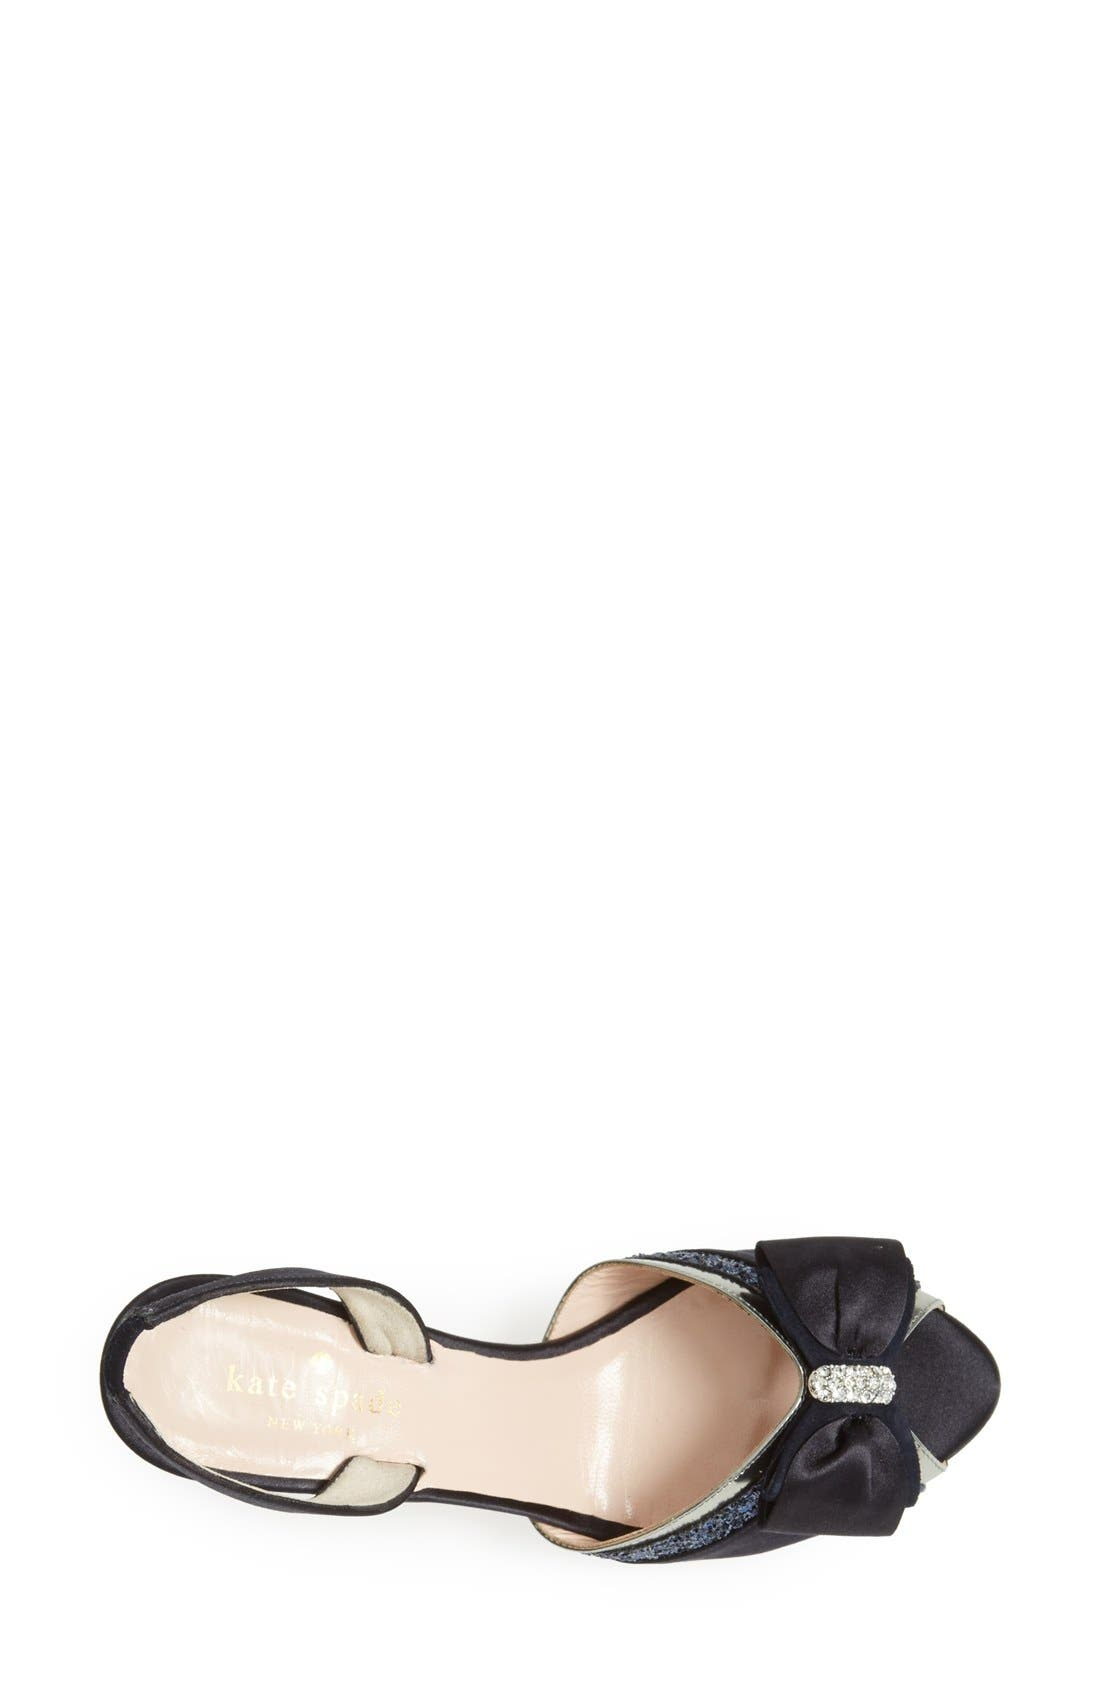 Alternate Image 3  - kate spade new york 'solar' satin bow sandal (women)